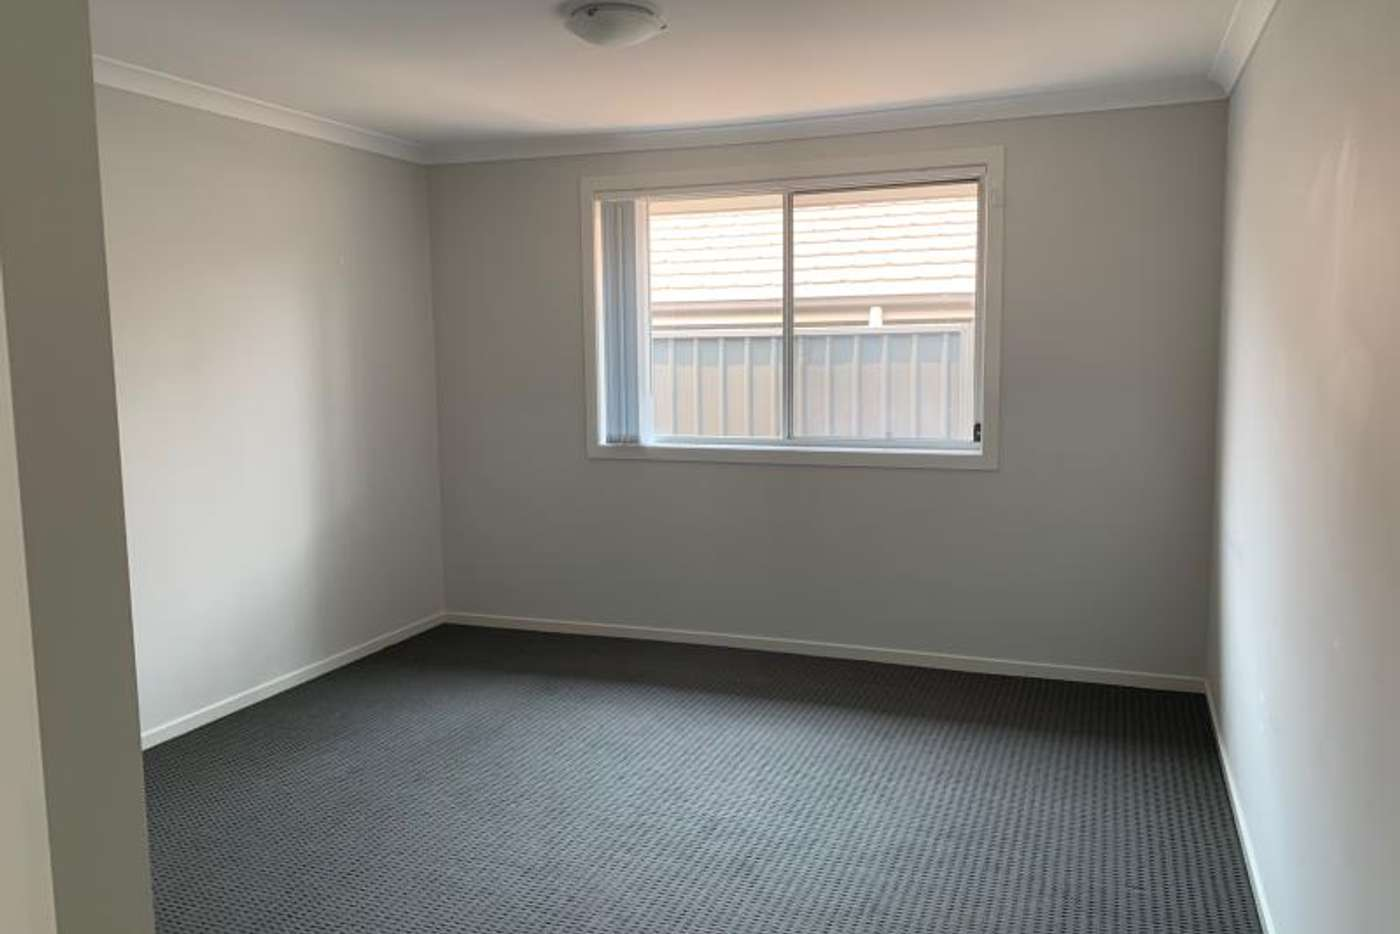 Seventh view of Homely house listing, 14 Creswell St, Wadalba NSW 2259